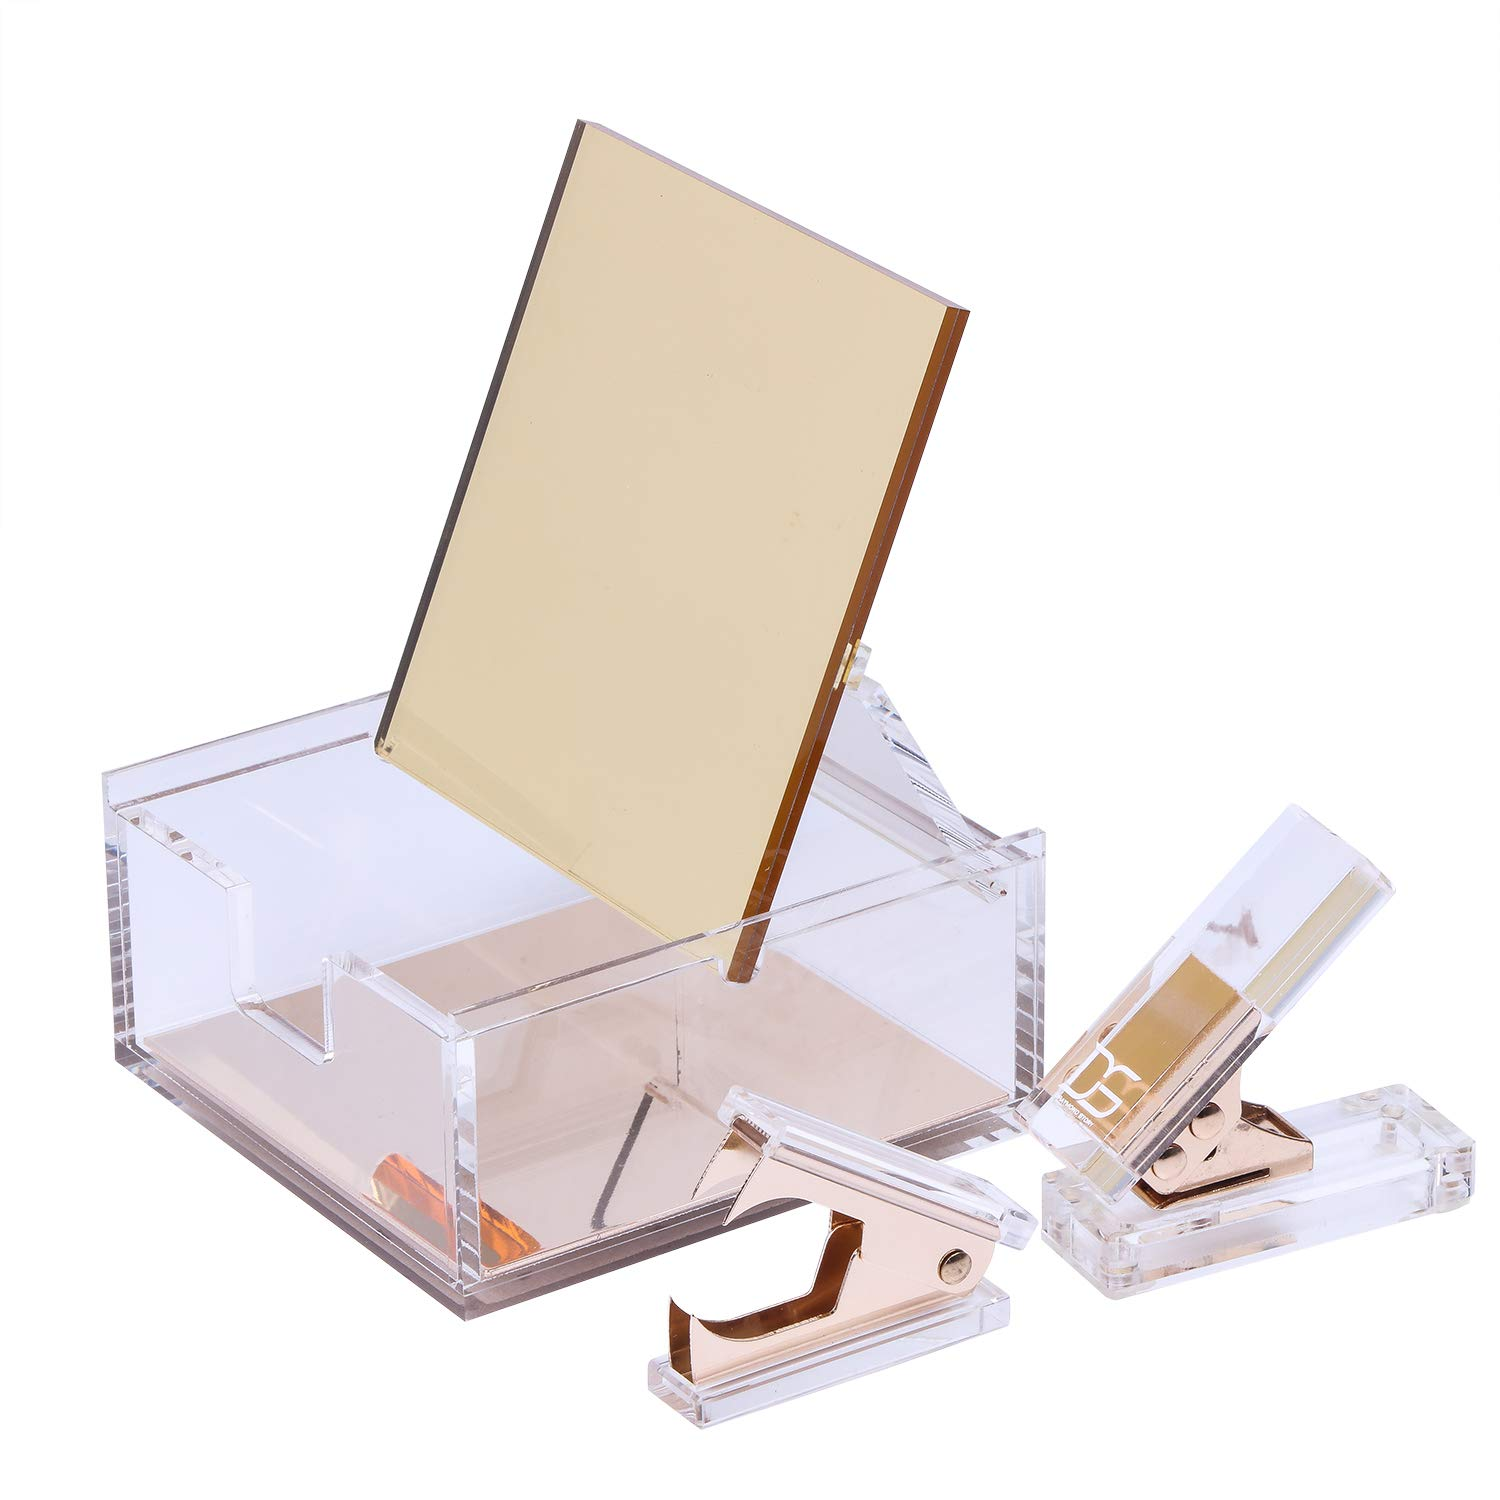 Acrylic & Gold Stationery Bundle: 1) Hole Punch 1) Staple Remover 1) Built-in Mirror Box - All Gold Everything by Draymond Story